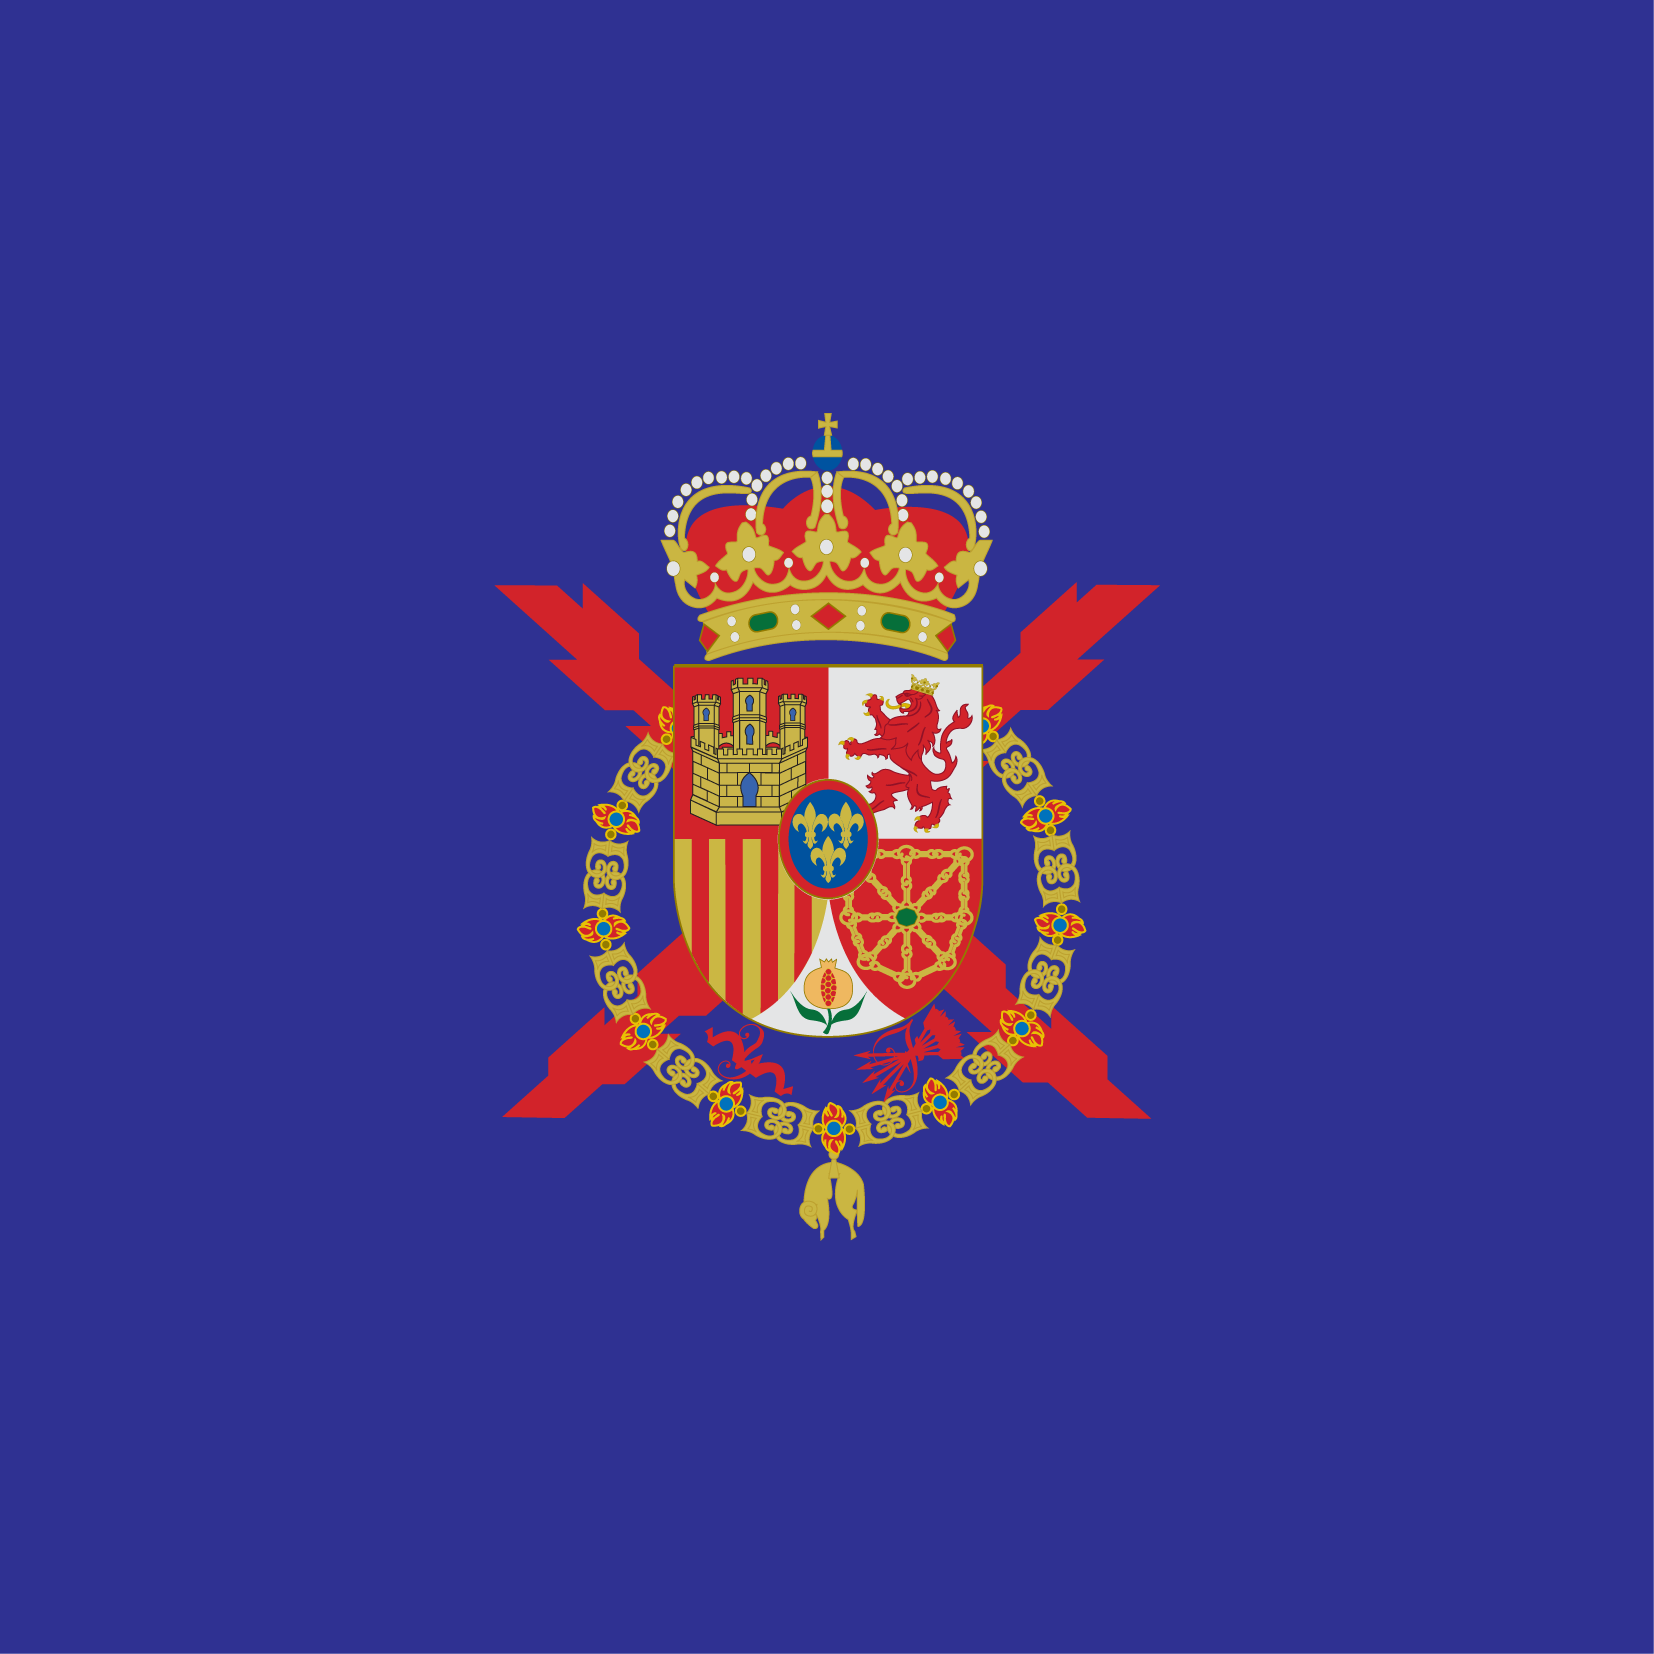 The Standard of the King of Spain